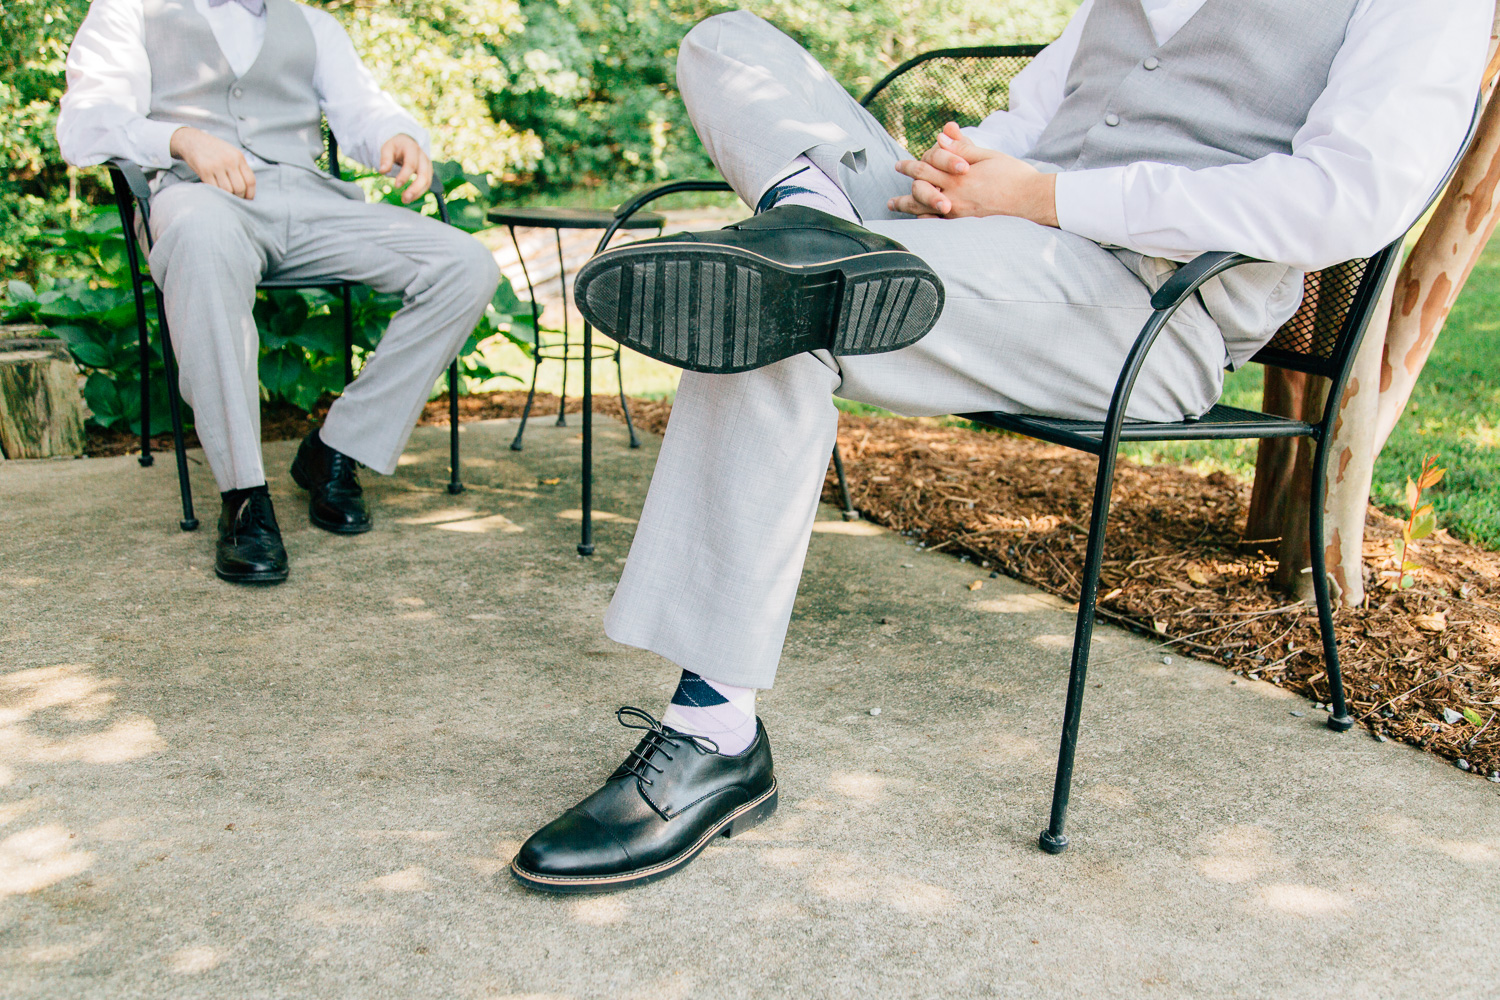 Image of wedding day shoes and socks by Rachel Bowman and Jared Bowman